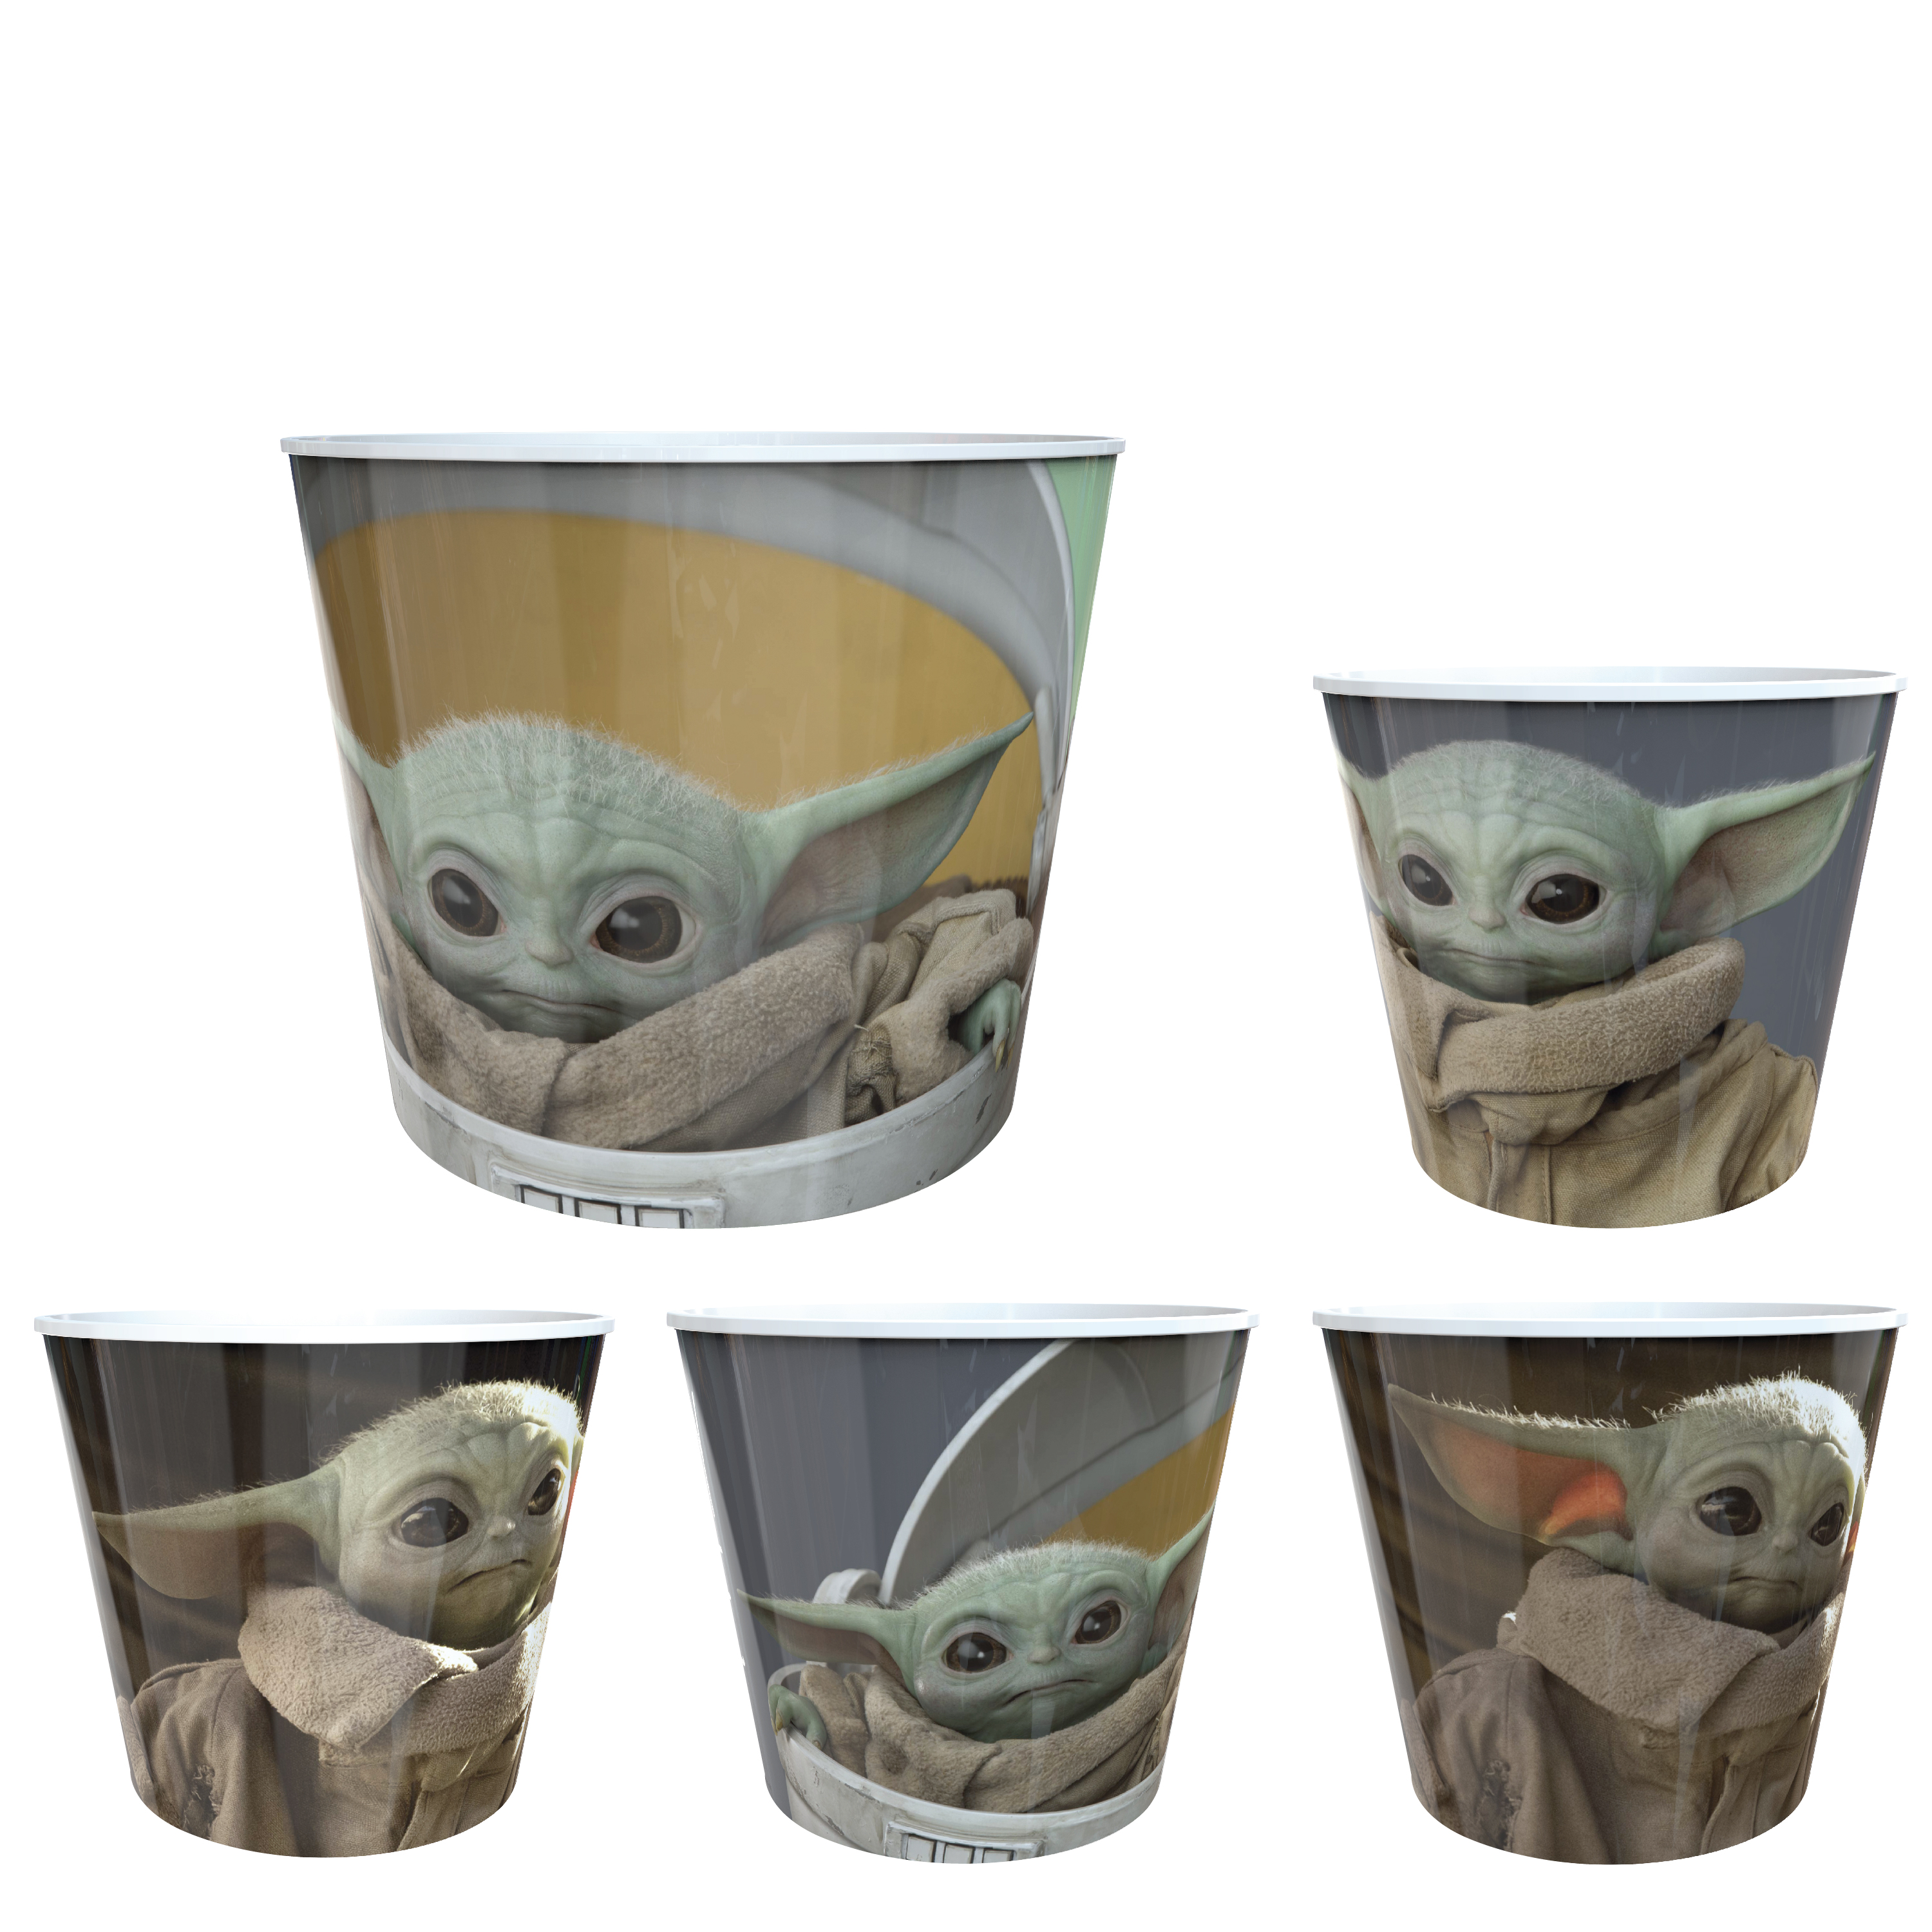 Star Wars: The Mandalorian Plastic Popcorn Container and Bowls, The Child (Baby Yoda), 5-piece set slideshow image 1